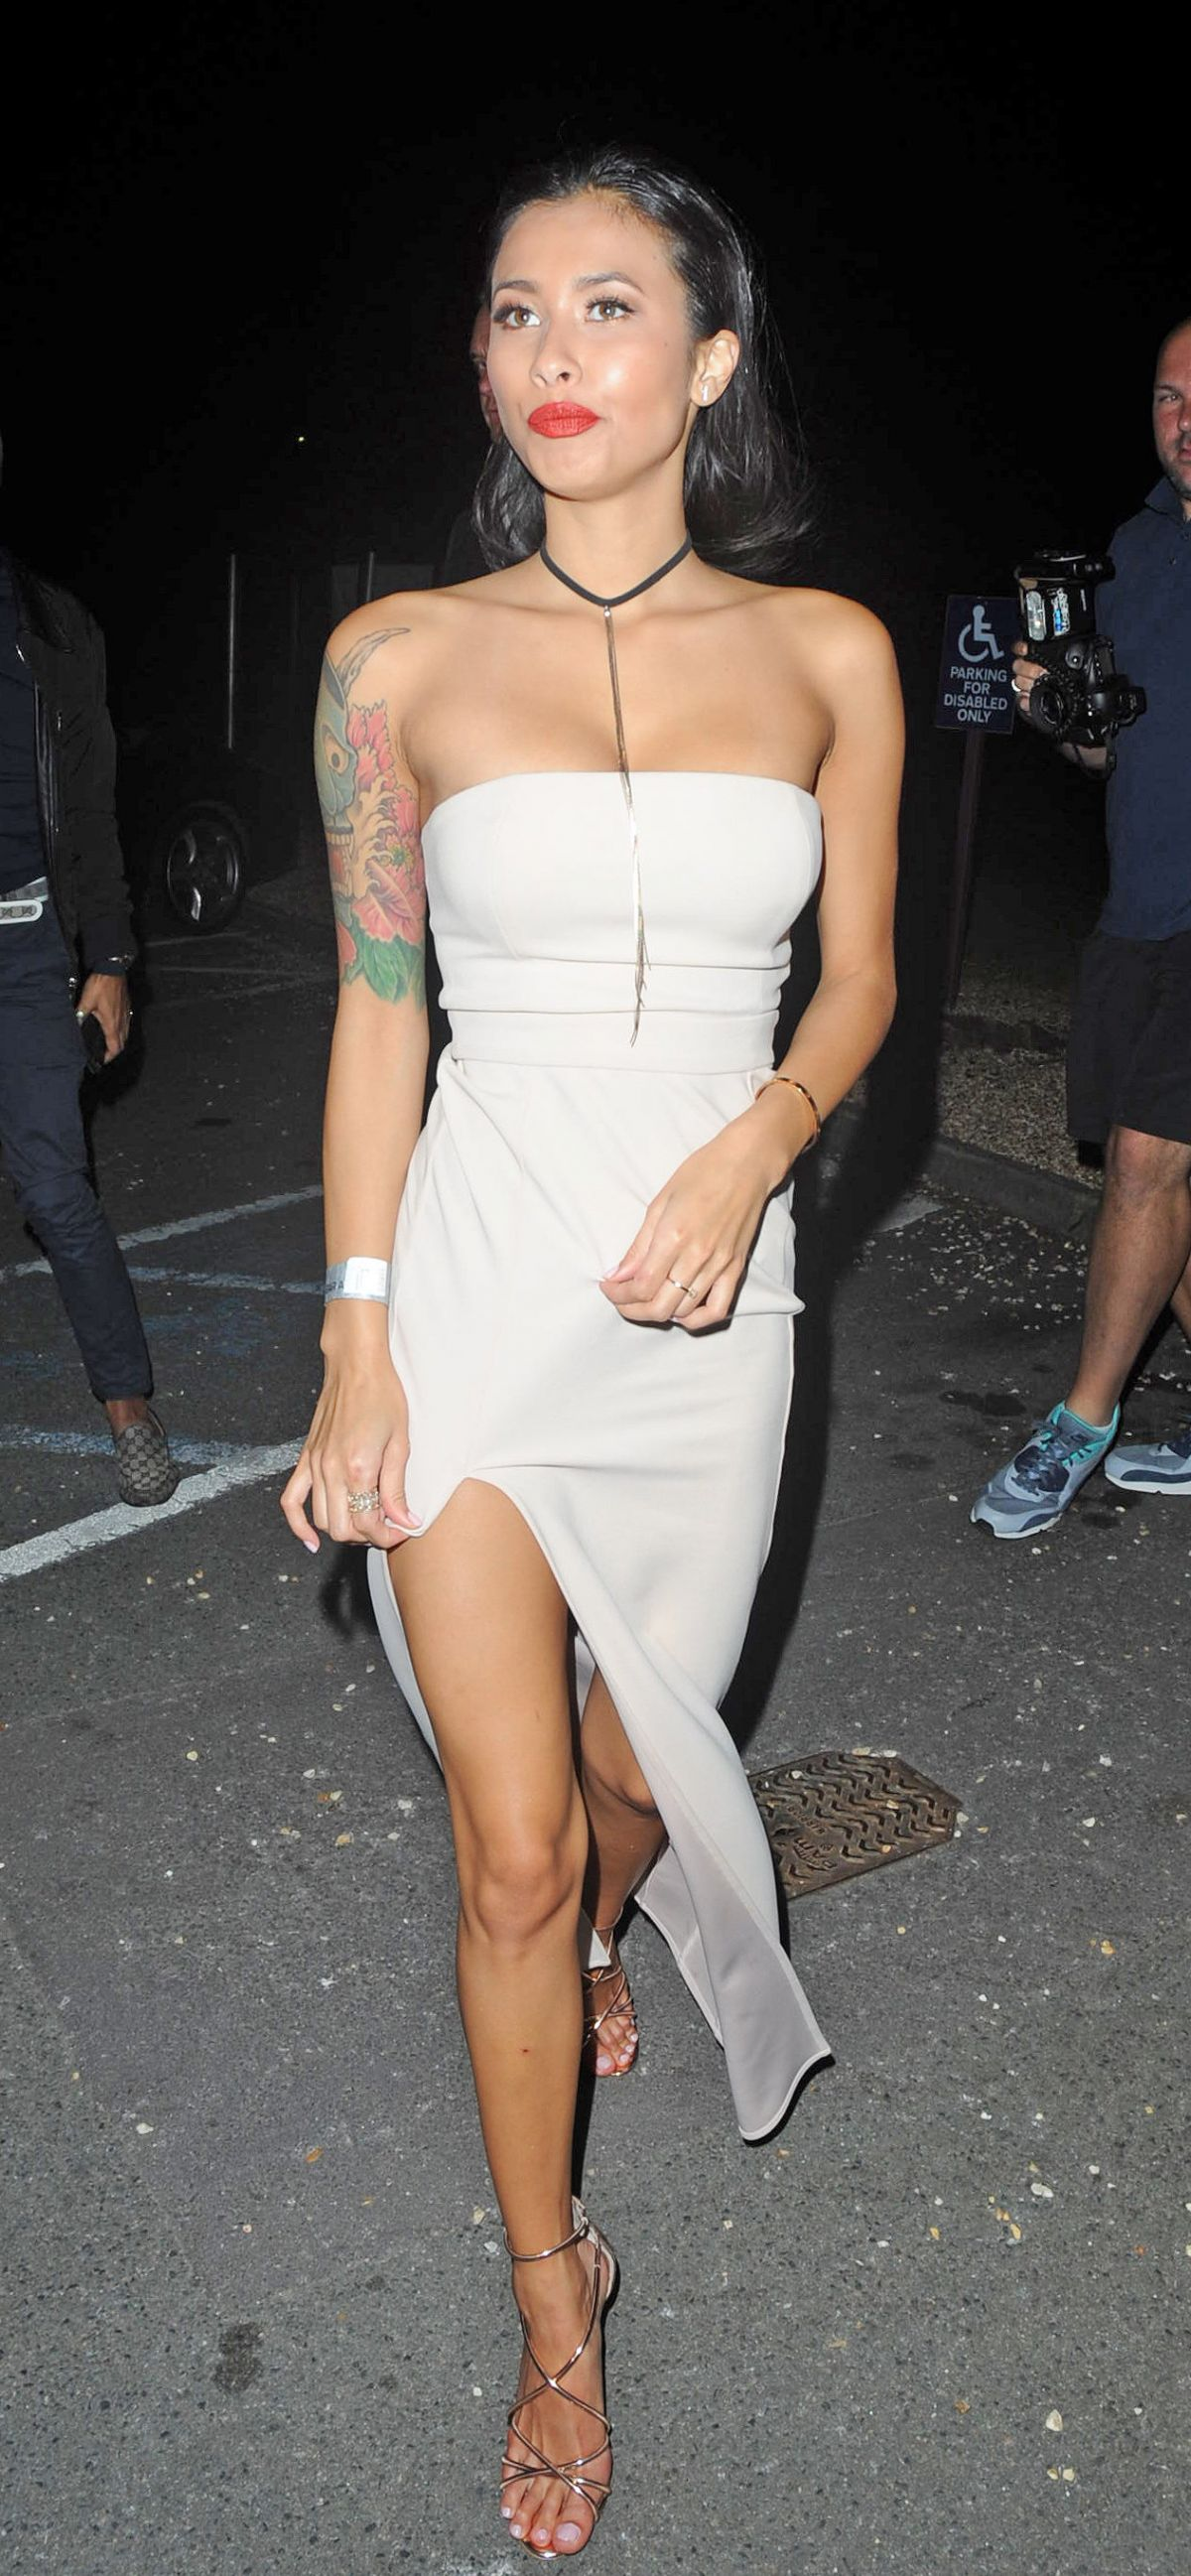 EVELYN ELLIS at Big Brother After Party in London 07/27/2016